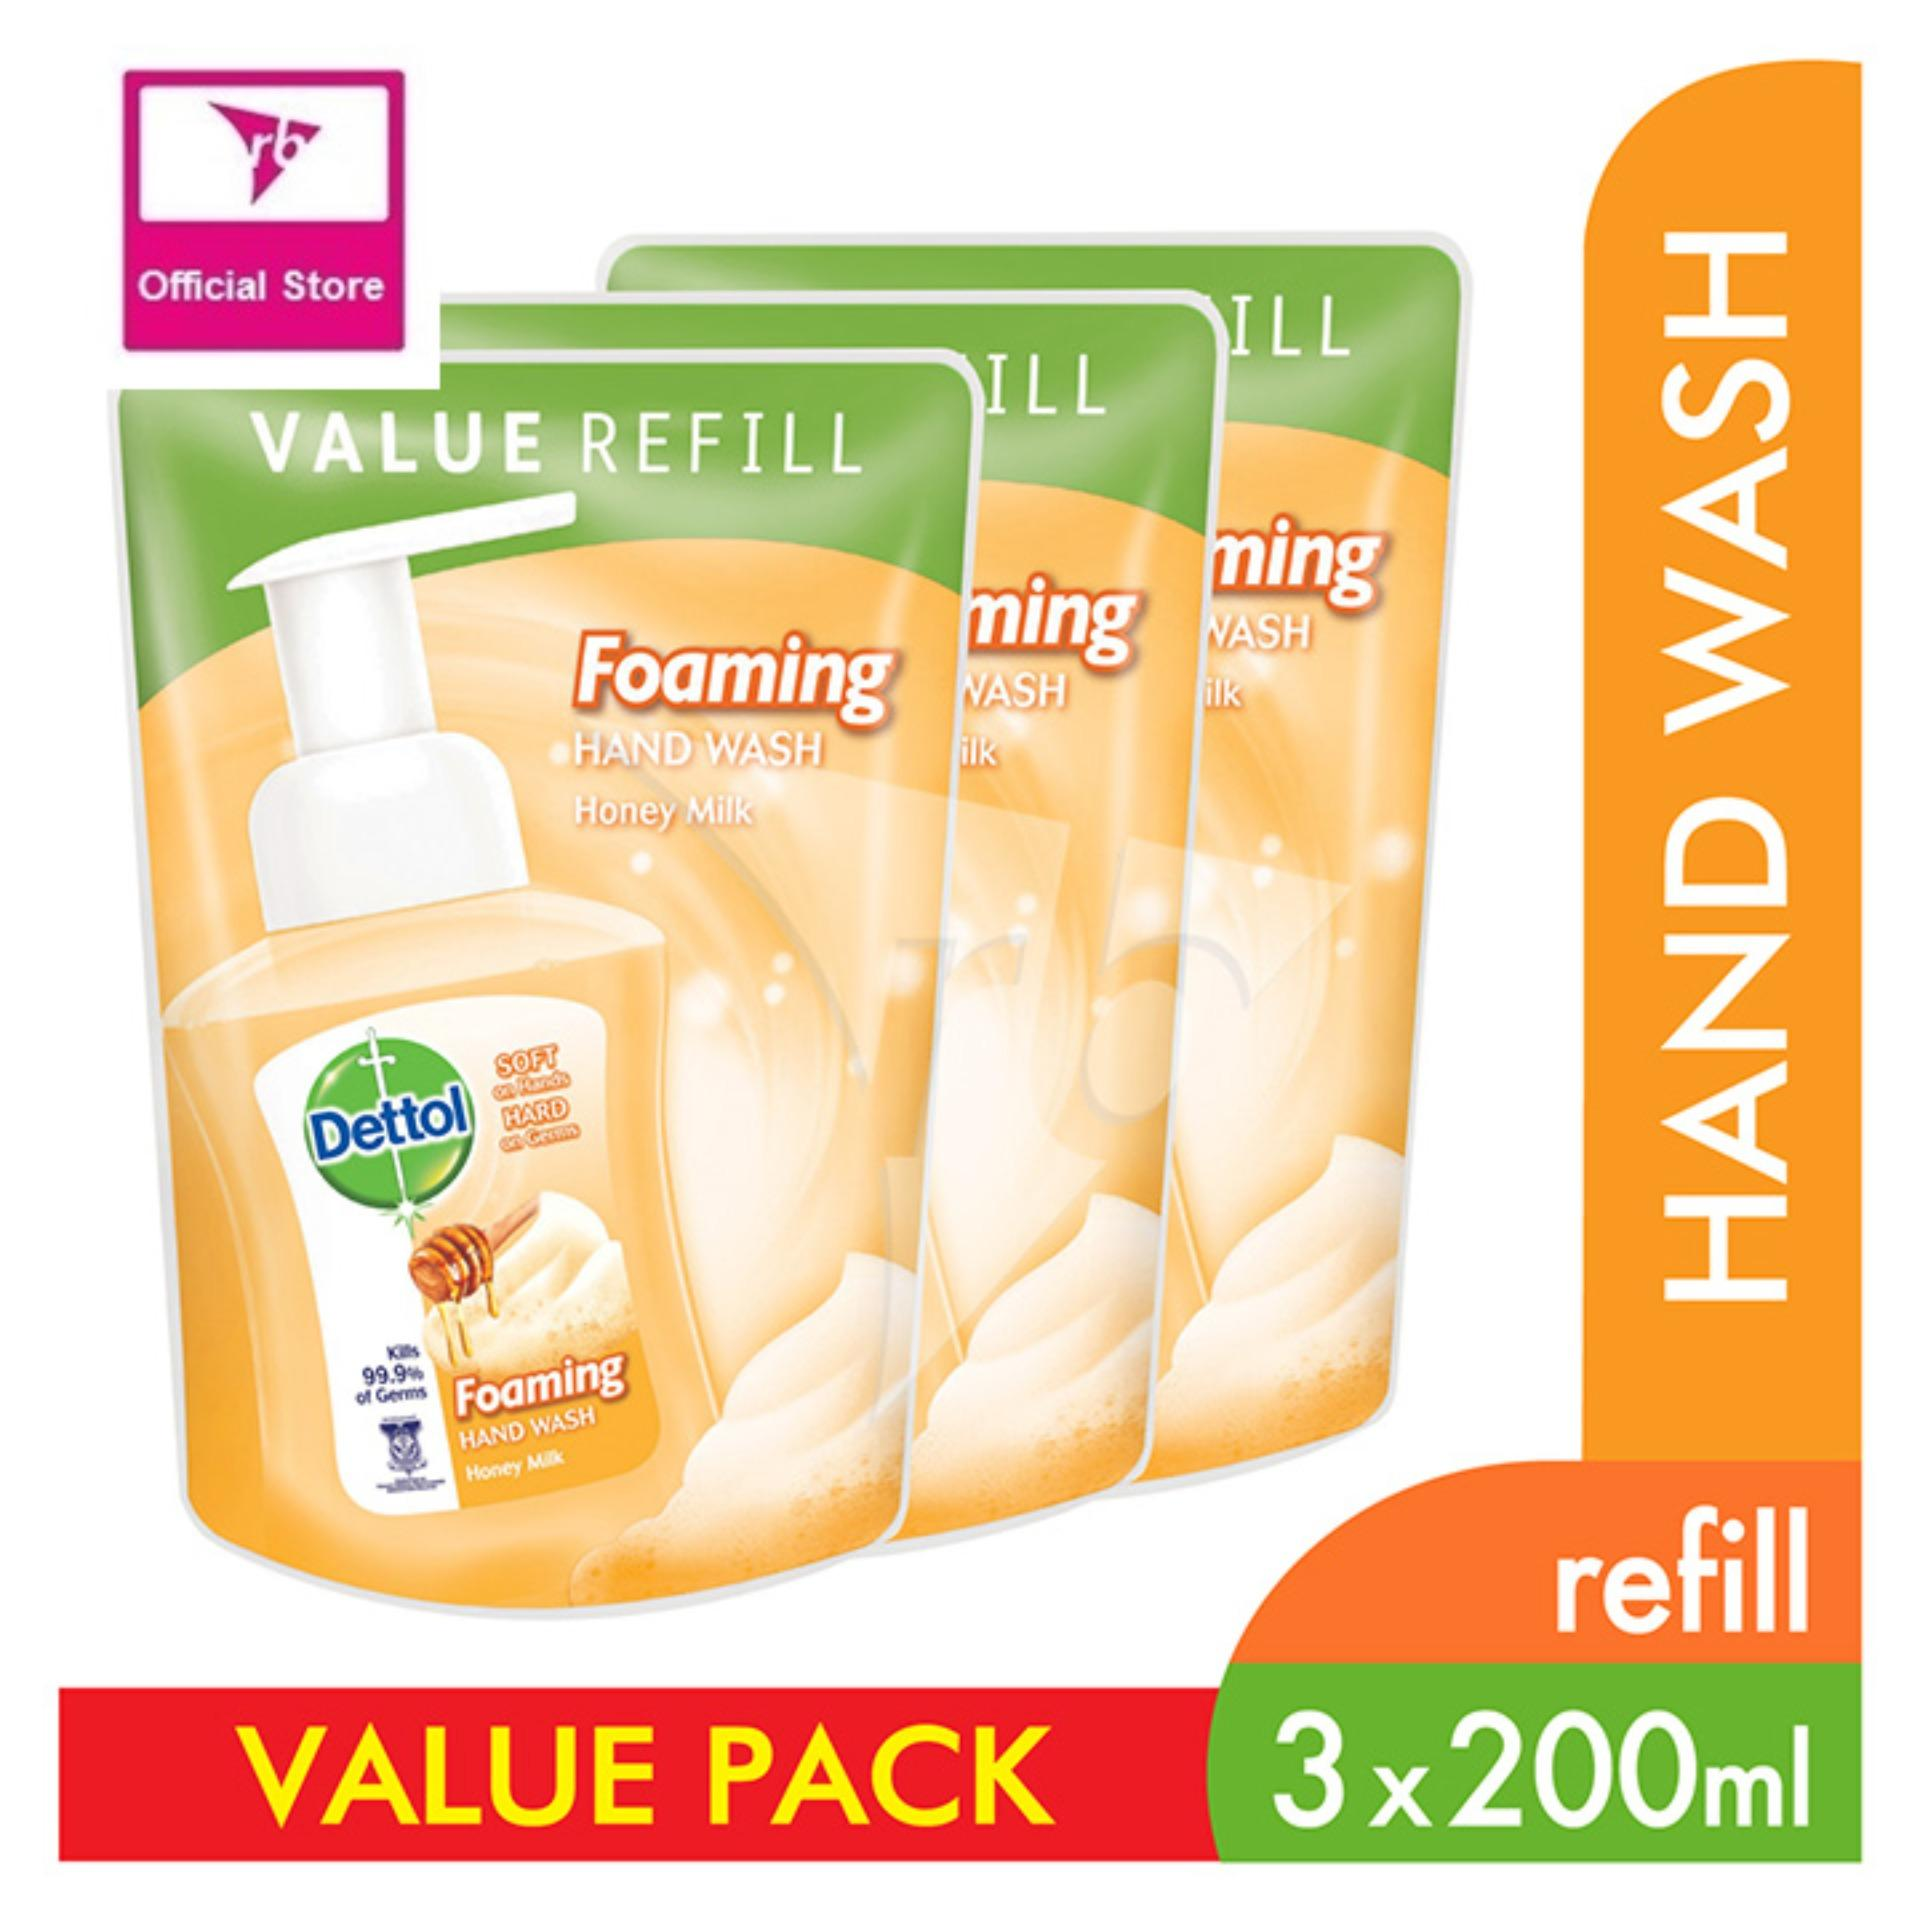 Check For Price Of Rain X Foaming Car Wash Concentrate Update Dettol Deep Cleanse Body 400ml Pouch Antibacterial Hand Honey Milk Refill 200ml 3